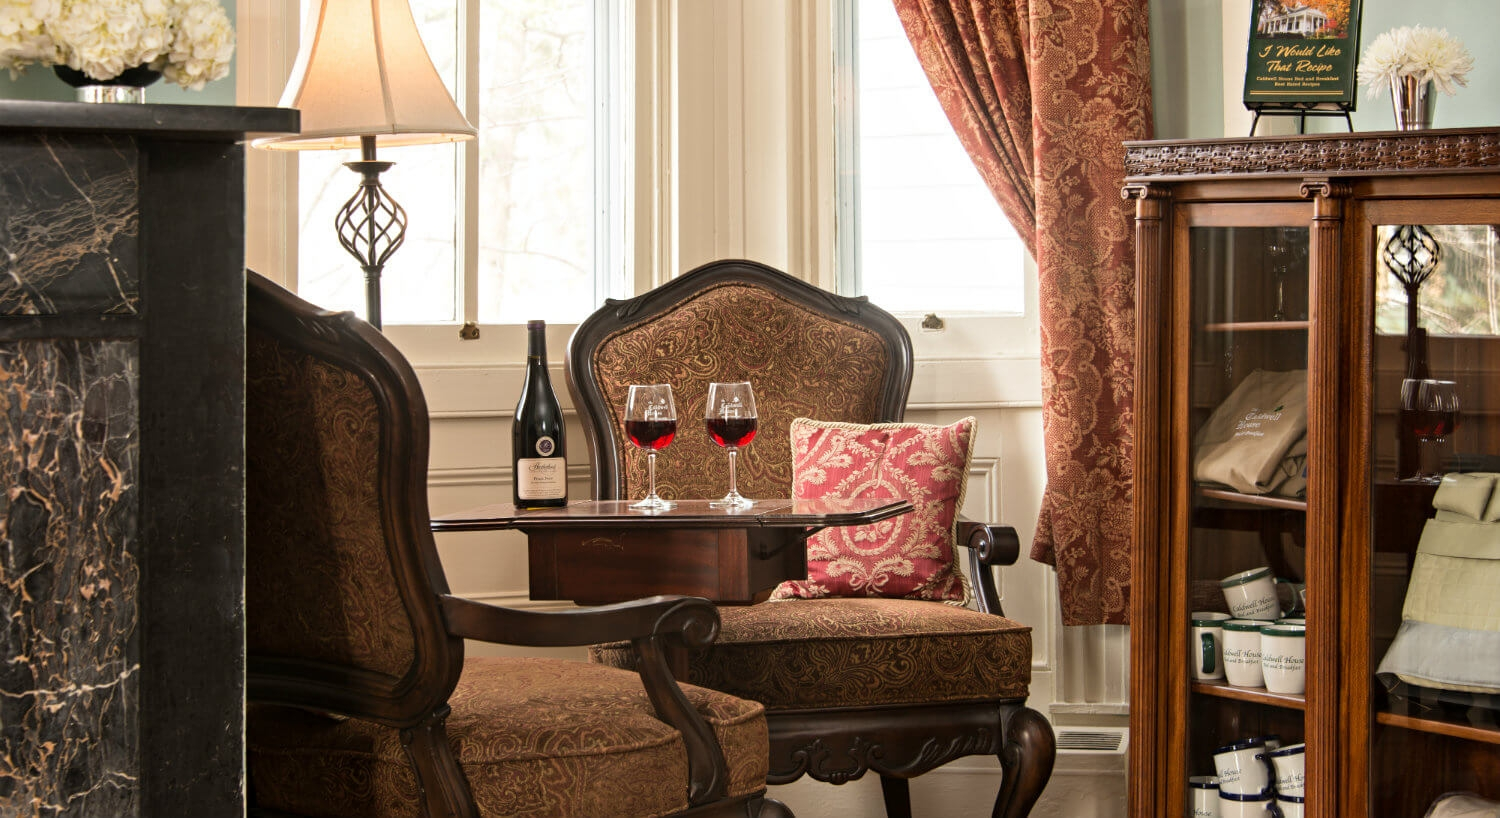 Wine is being served on a silver tray in an intimate sitting room with a cozy fireplace and seating in corner